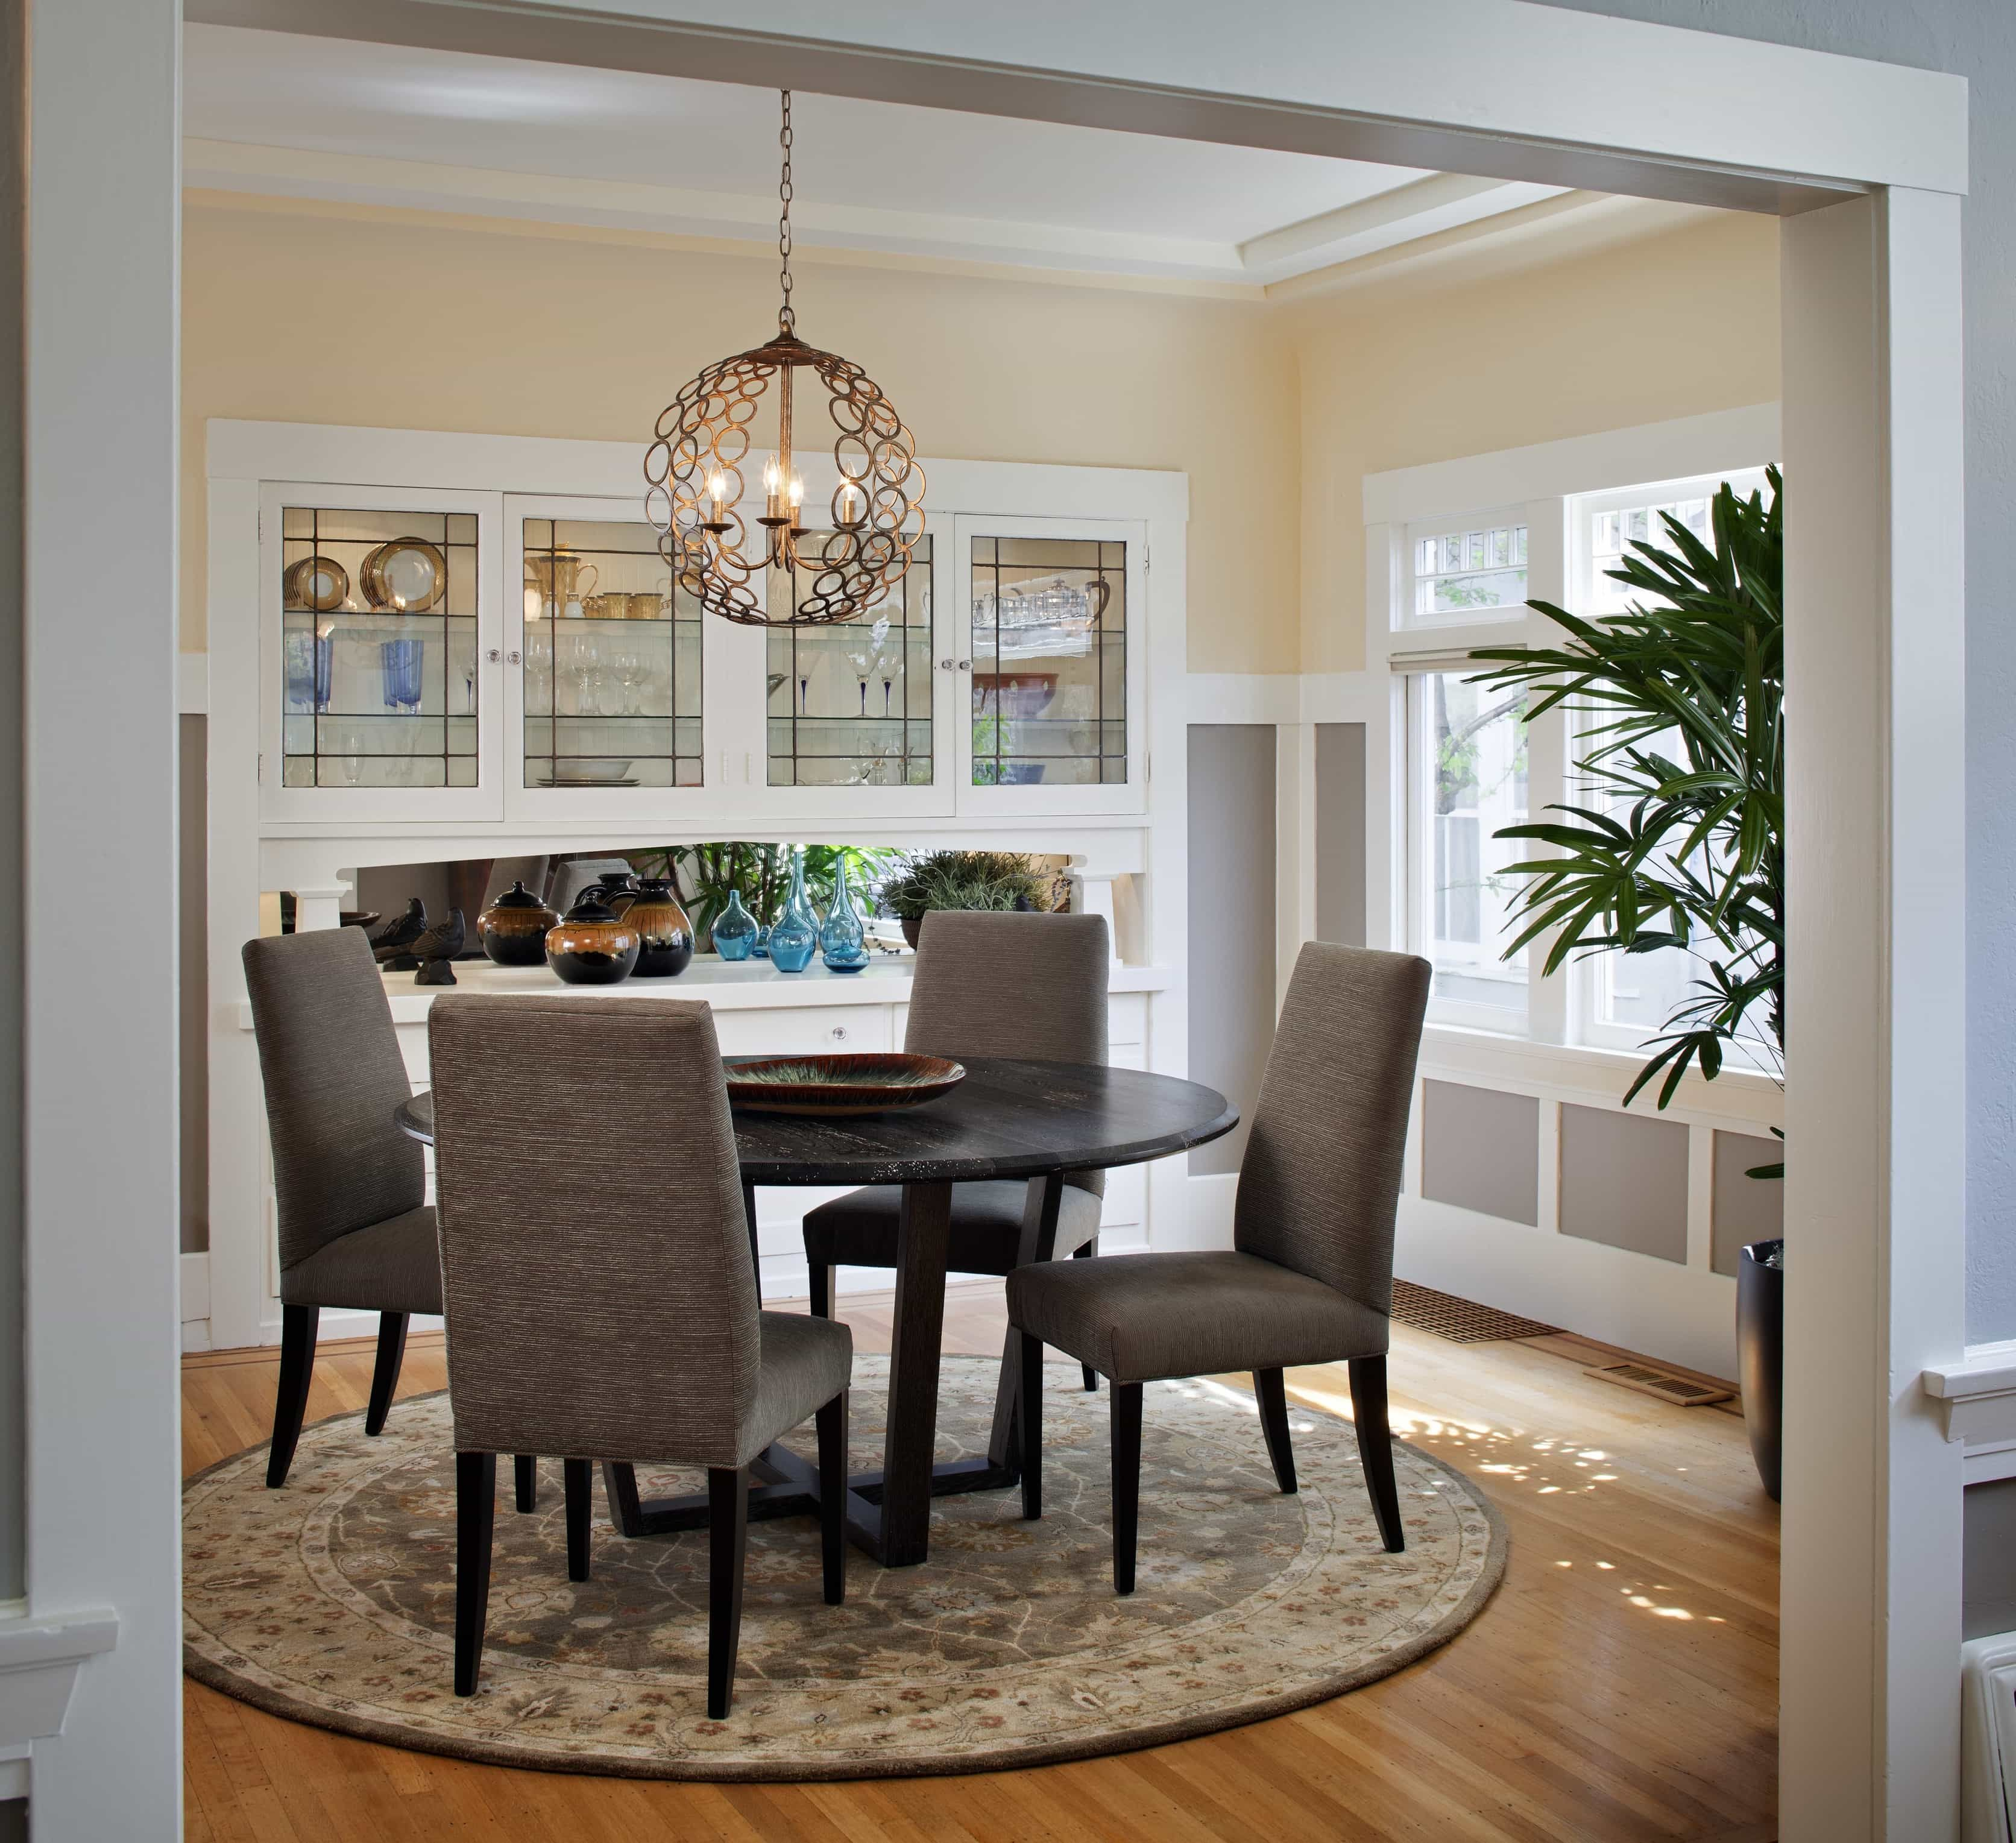 Craftsman Lighting For Dining Room With Round Table Farmhouse Dining Rooms Decor Craftsman Dining Room Round Dining Table Furniture